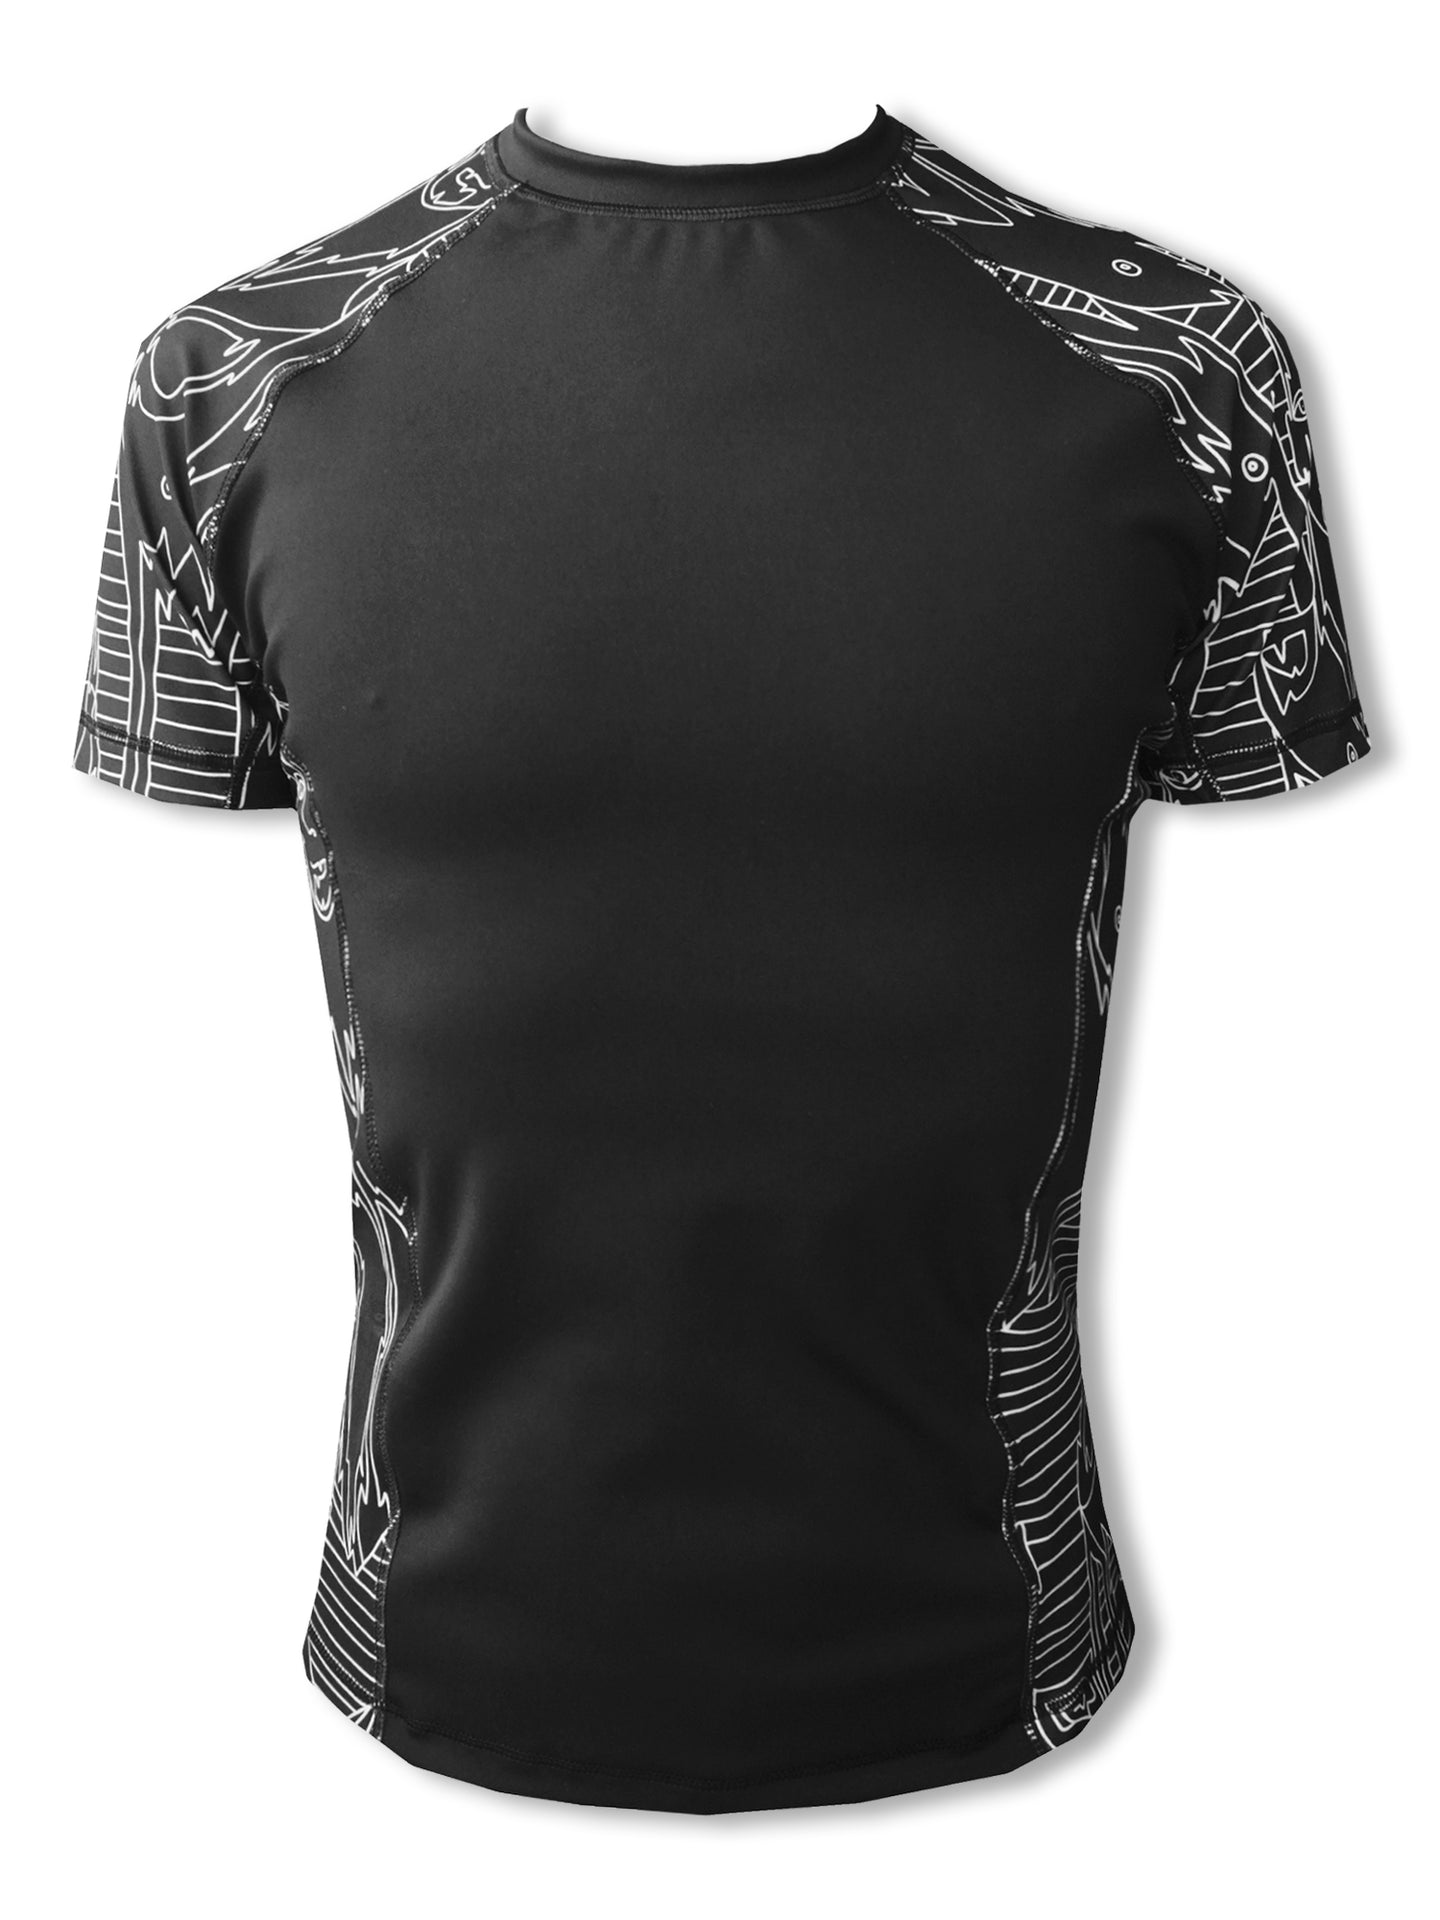 'Get In Line' Compression Top - Patrick Church